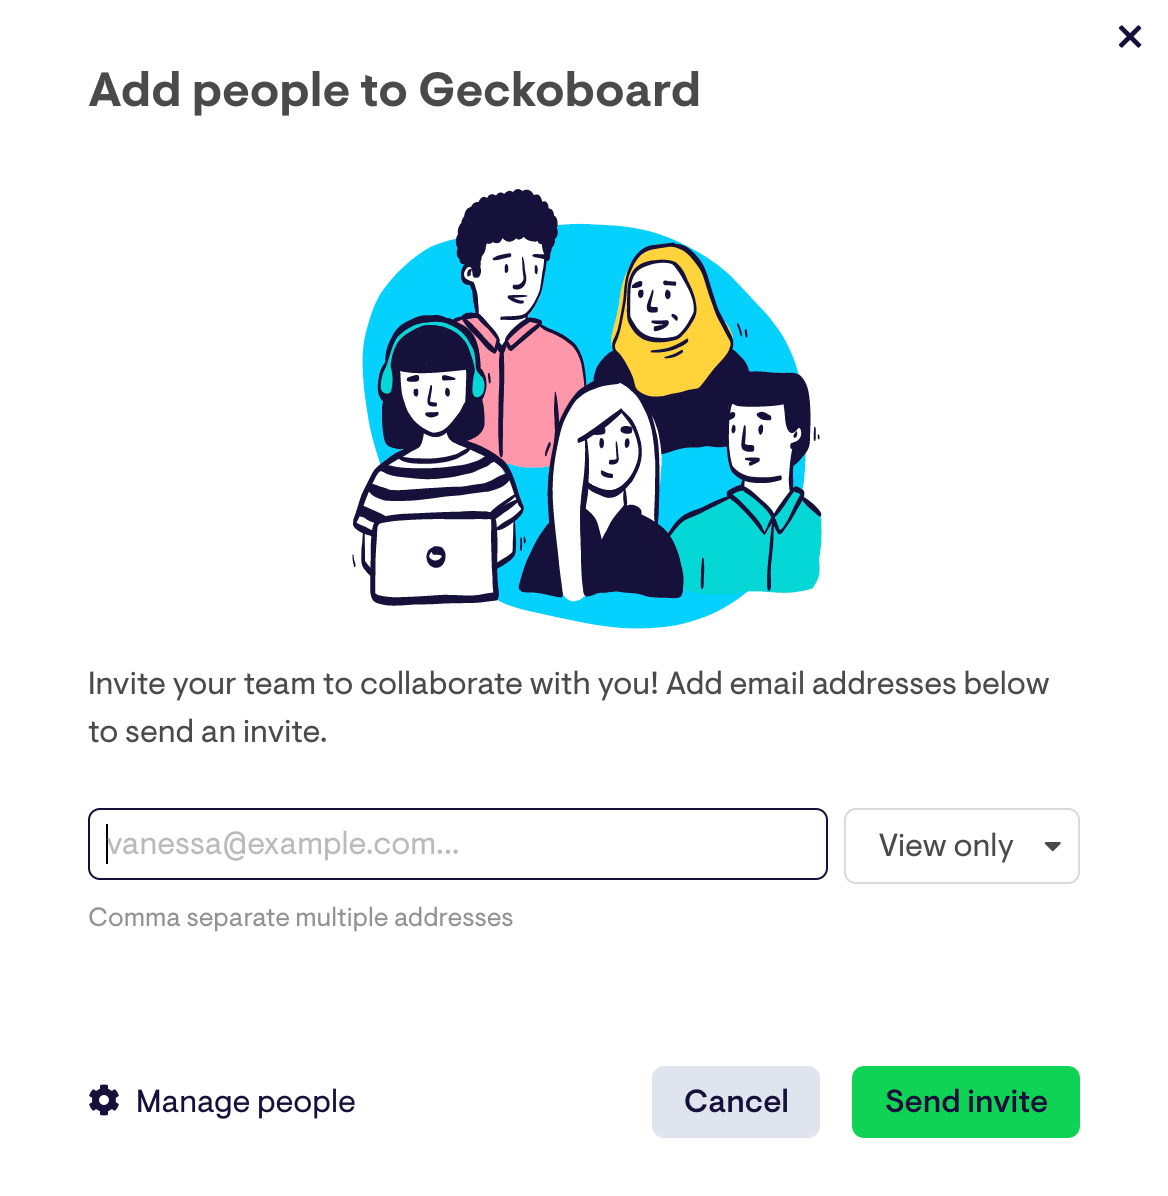 invite people to use geckoboard